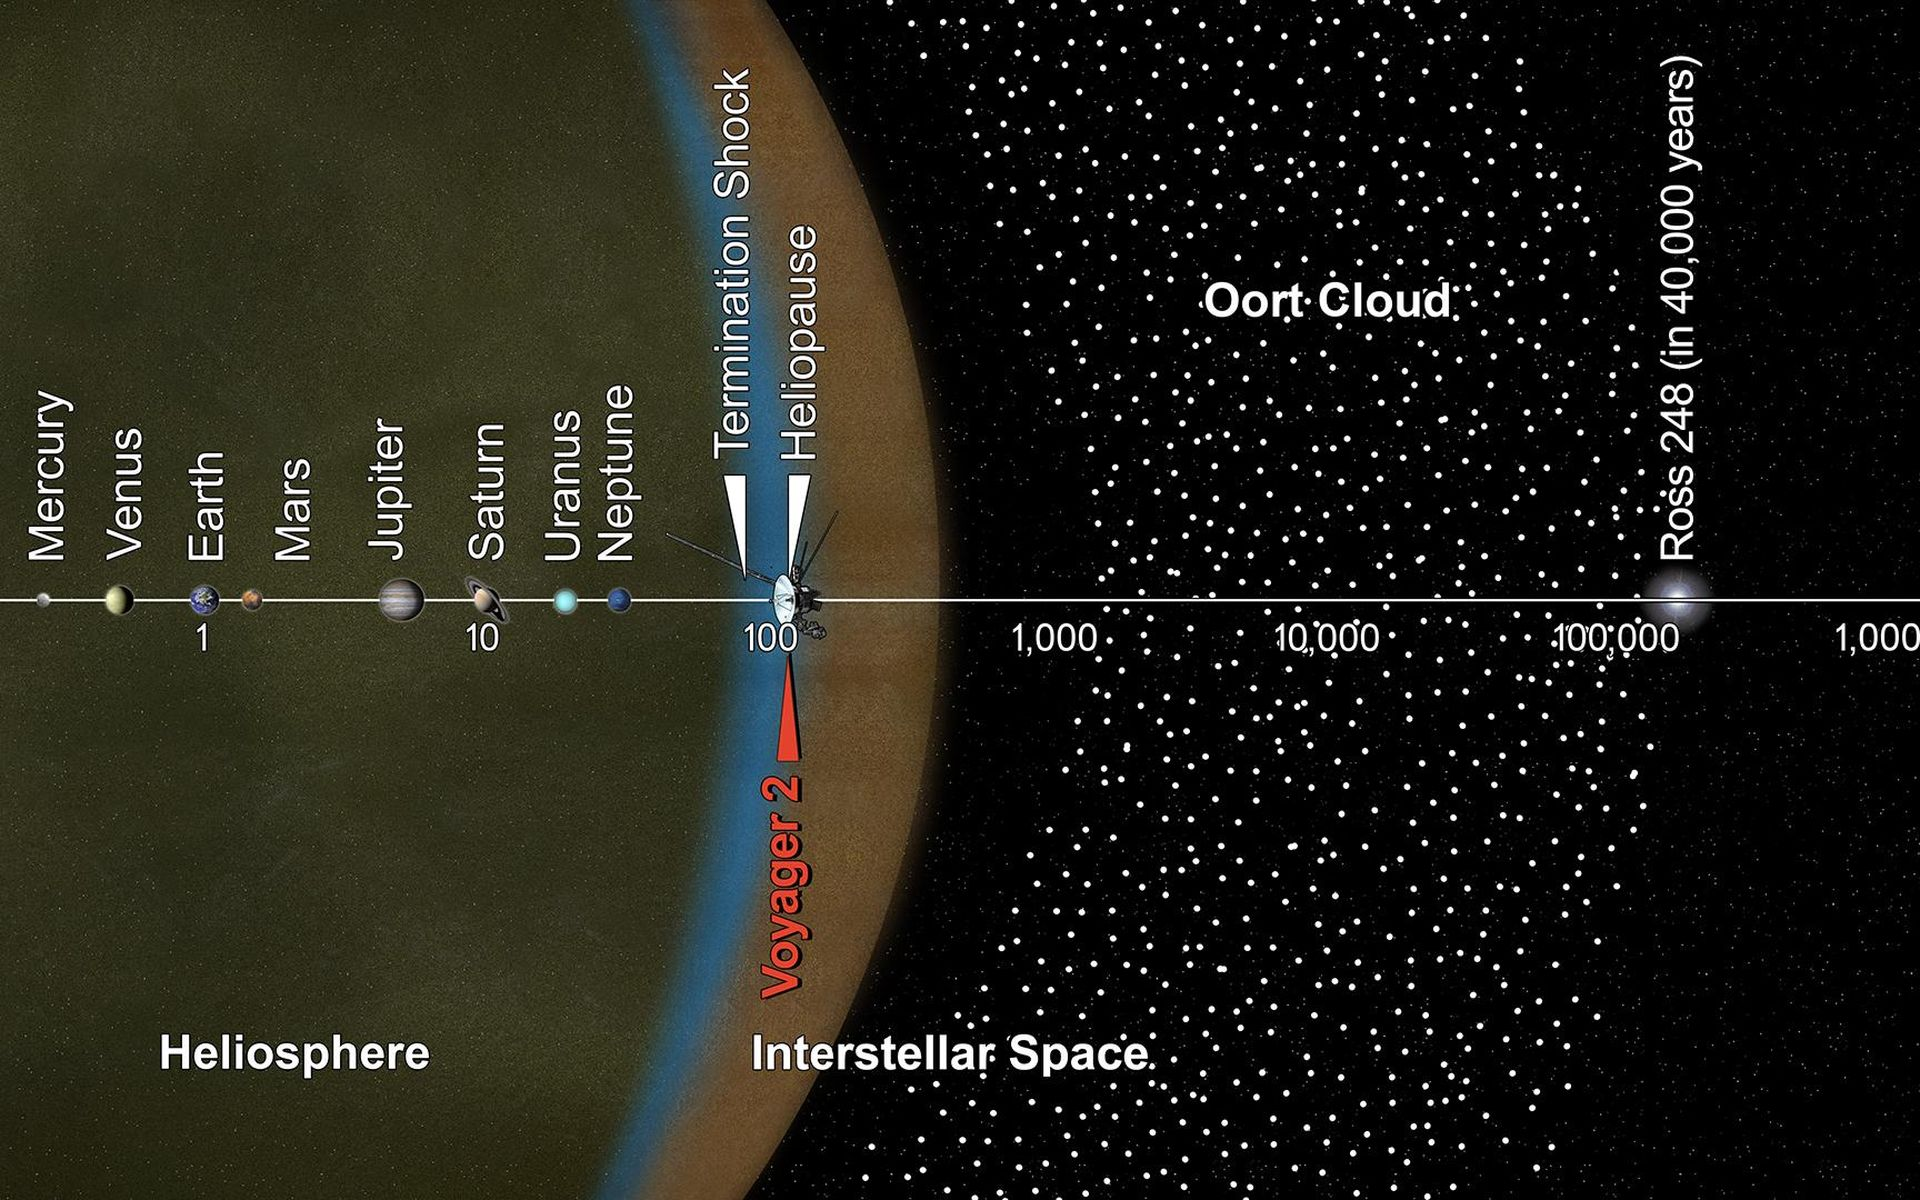 Space Images Voyager 2 and the Scale of the Solar System Artist 1920x1200